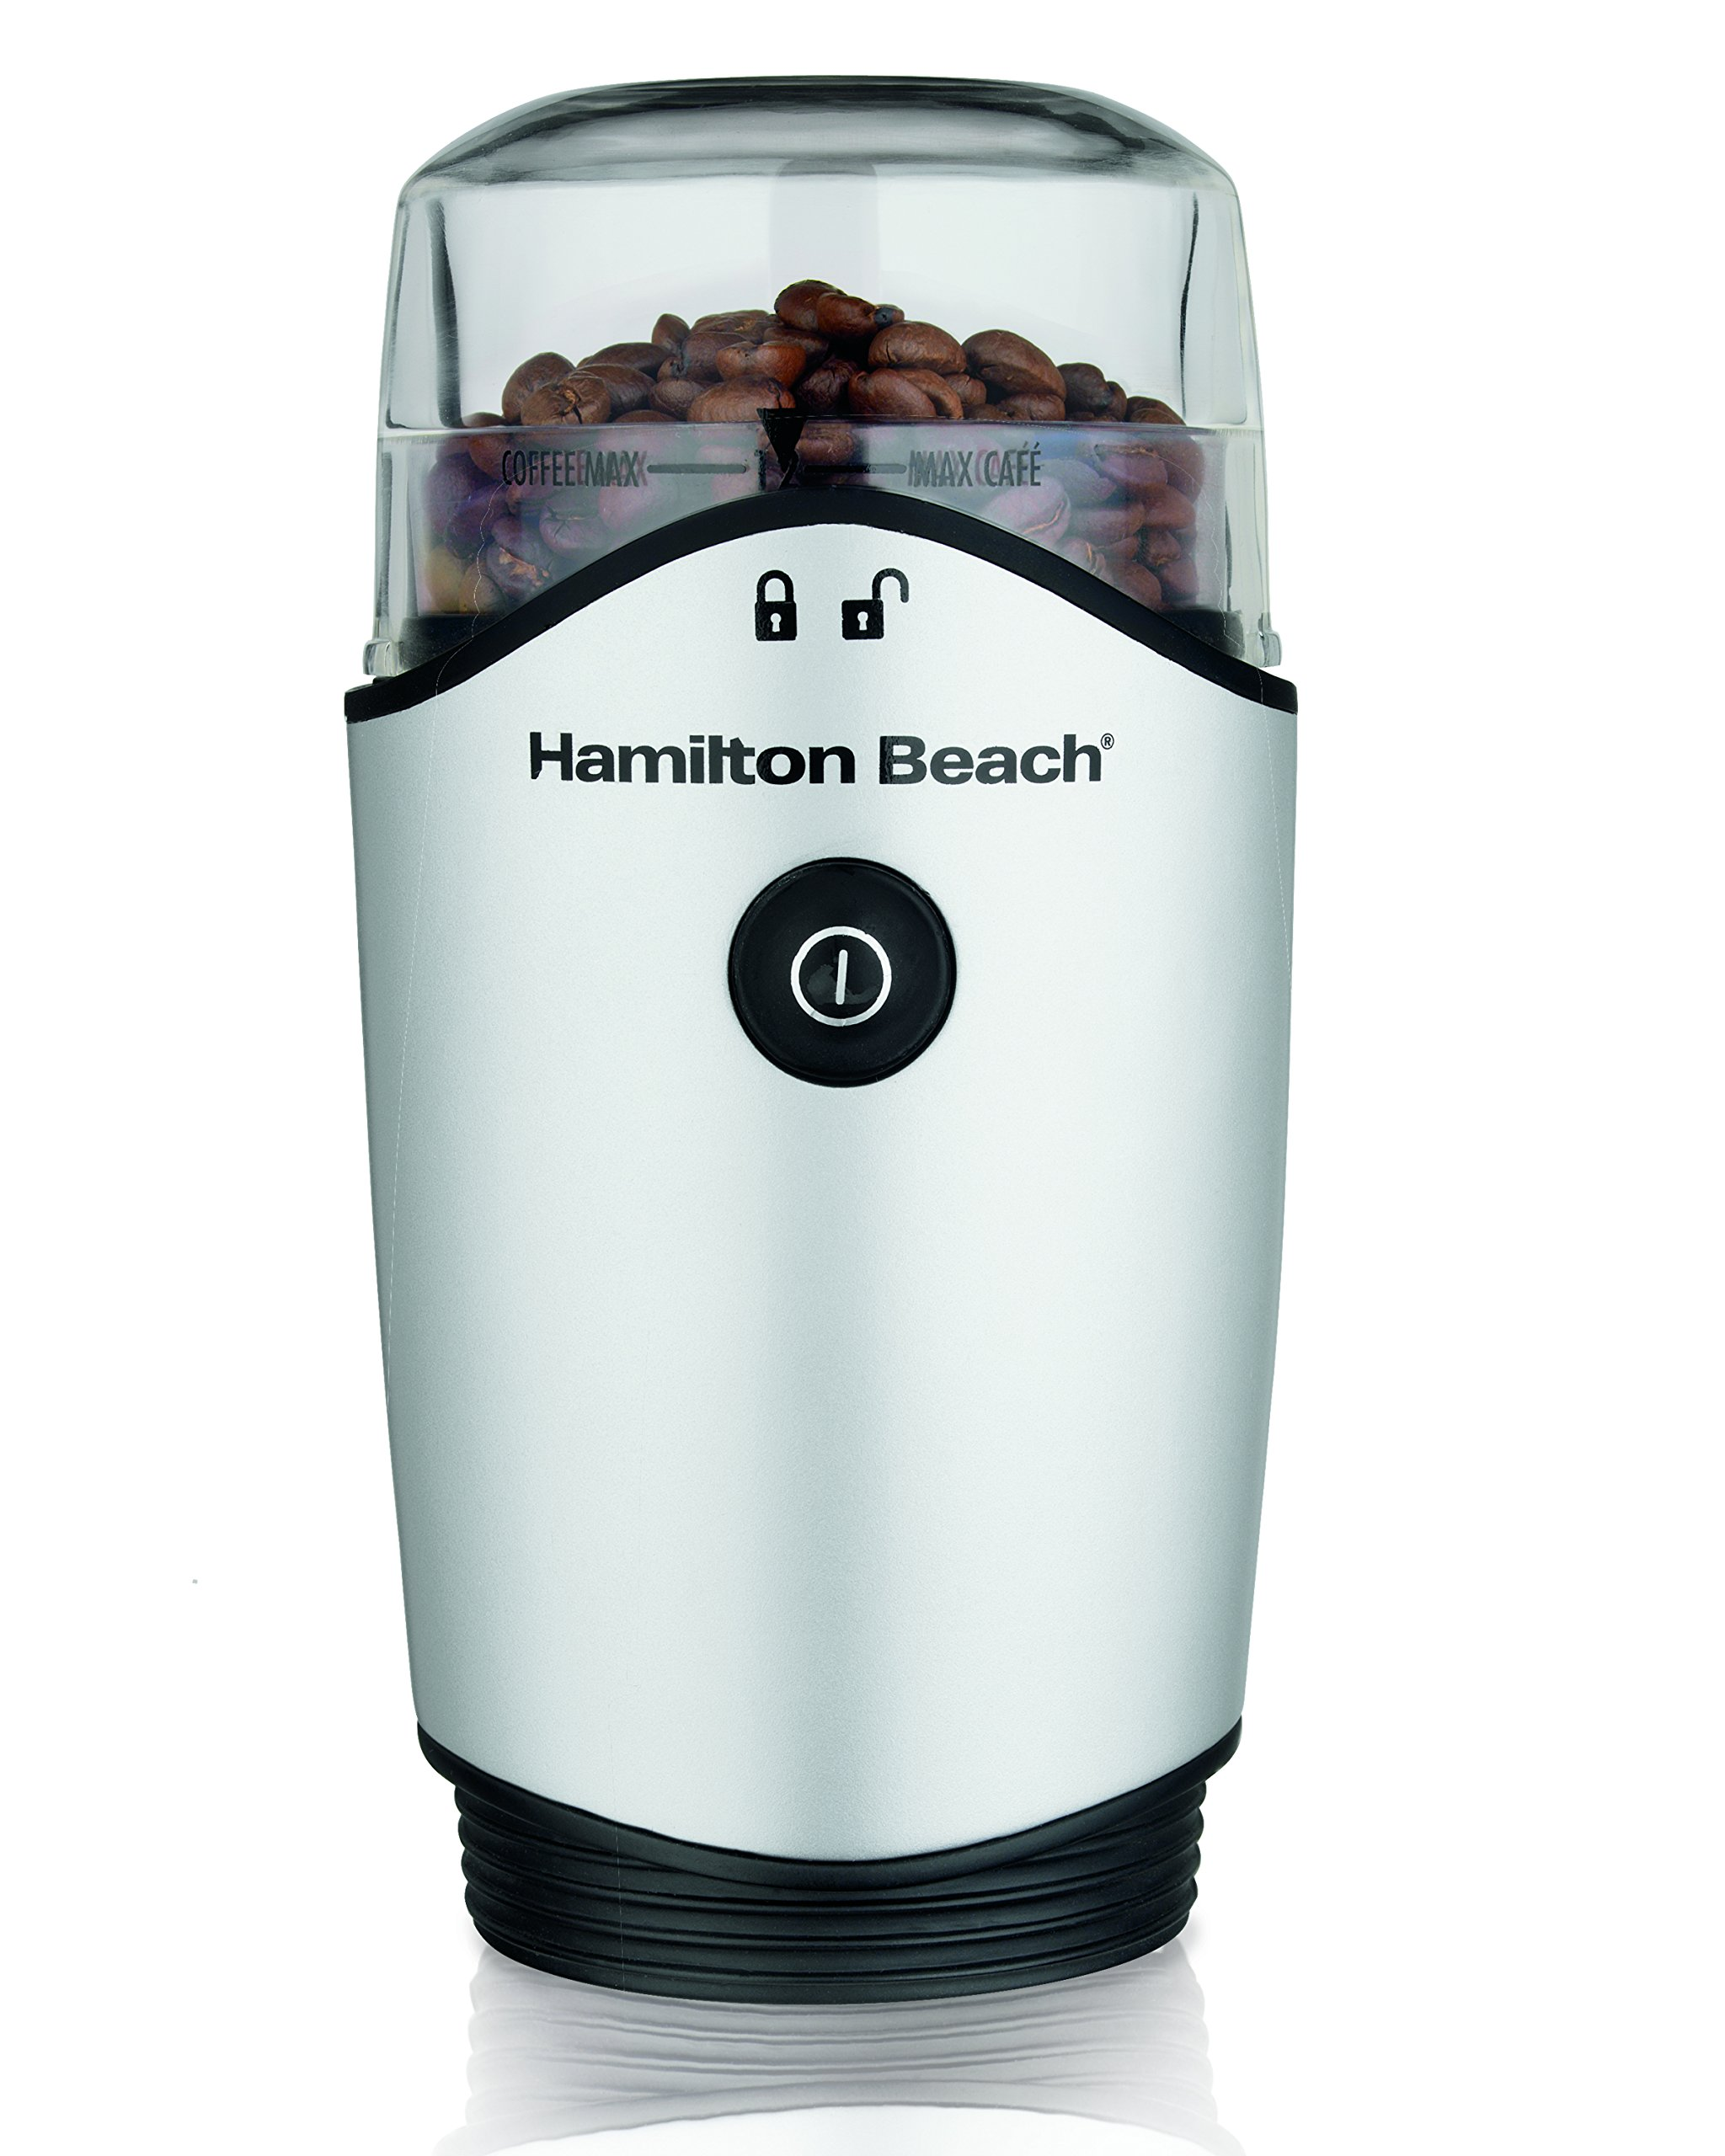 Hamilton Beach 80350R Spice & Coffee Grinder with Stainless Steel Blades